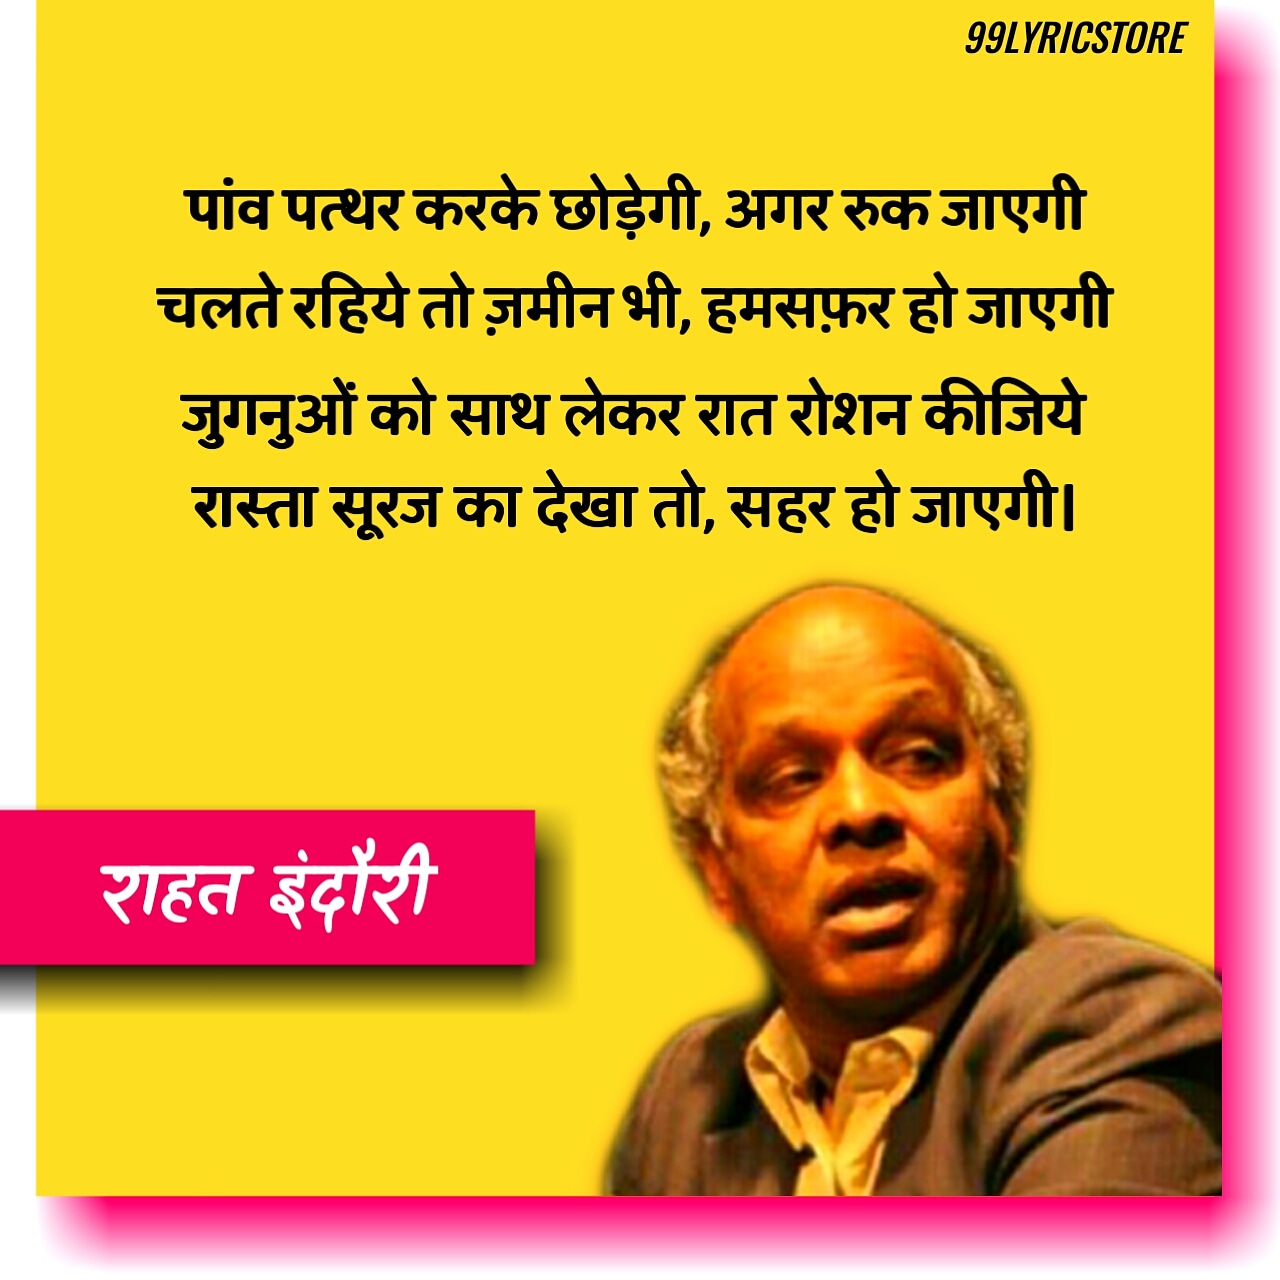 'Zindagi ki har kahani beasar ho jayegi' written and performed by Rahat Indori. This poetry is best Ghazal and Shayari of Rahat Indori.